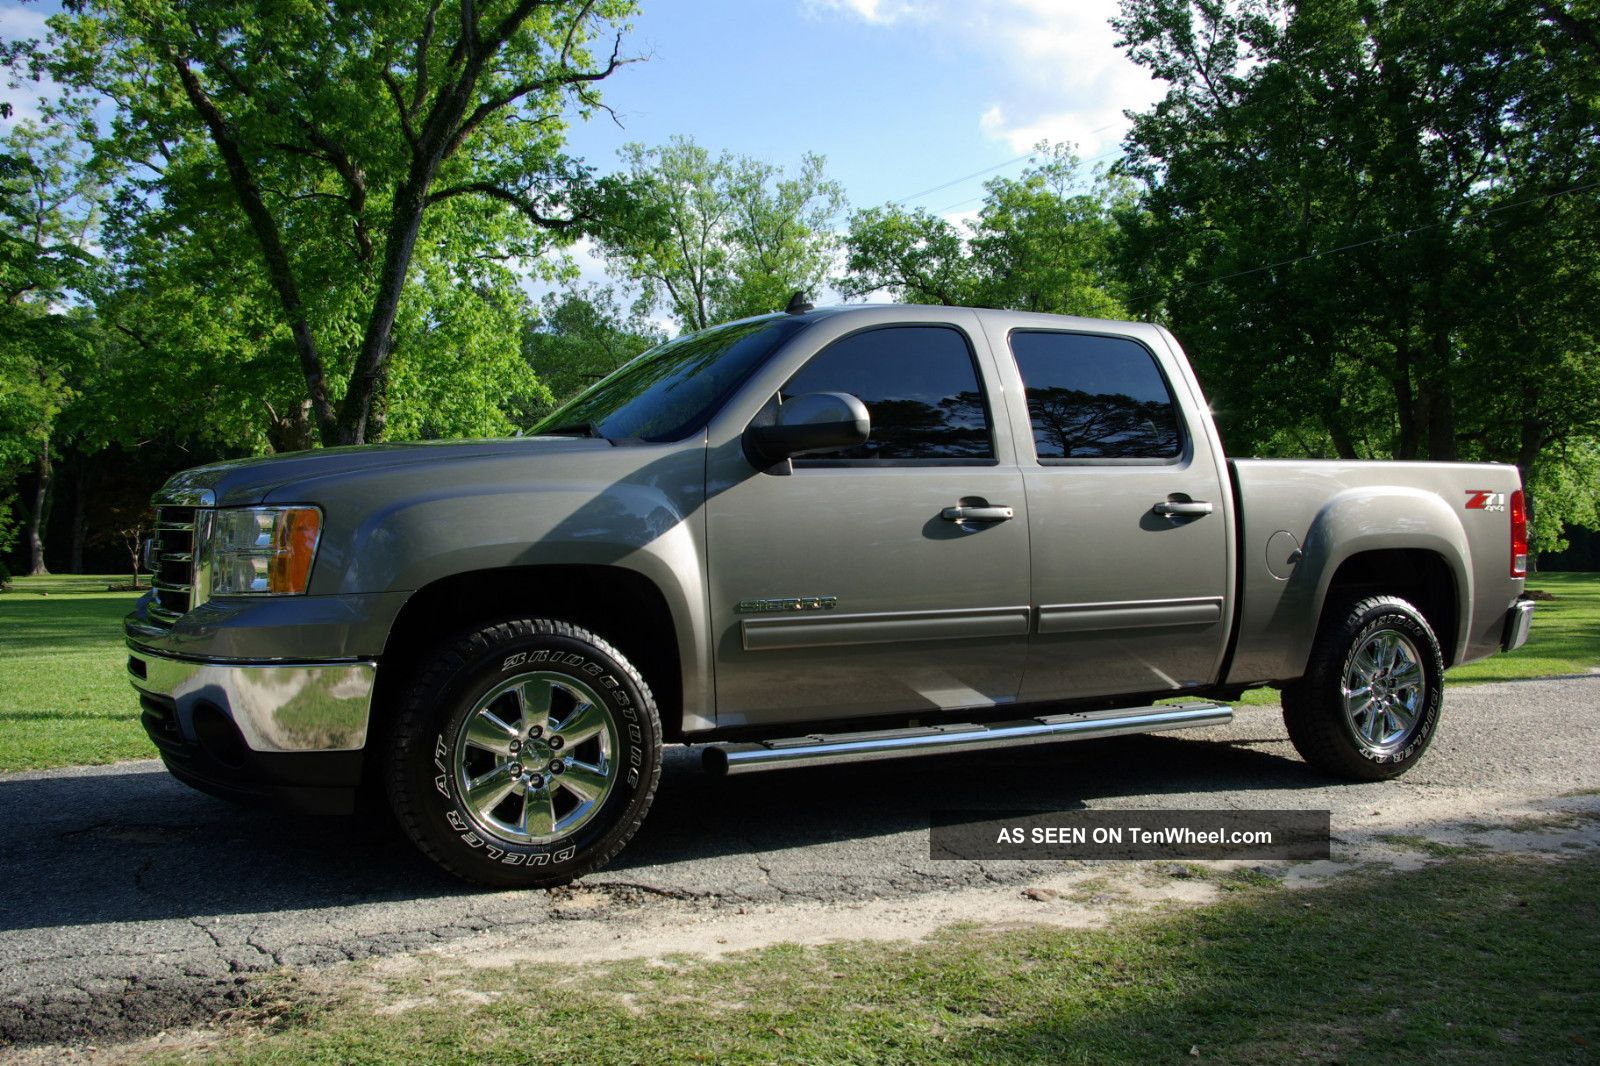 2013 Gmc Sierra Crew Cab 4x4 Z71 Slt,  Gray Exterior With Black Interior Sierra 1500 photo